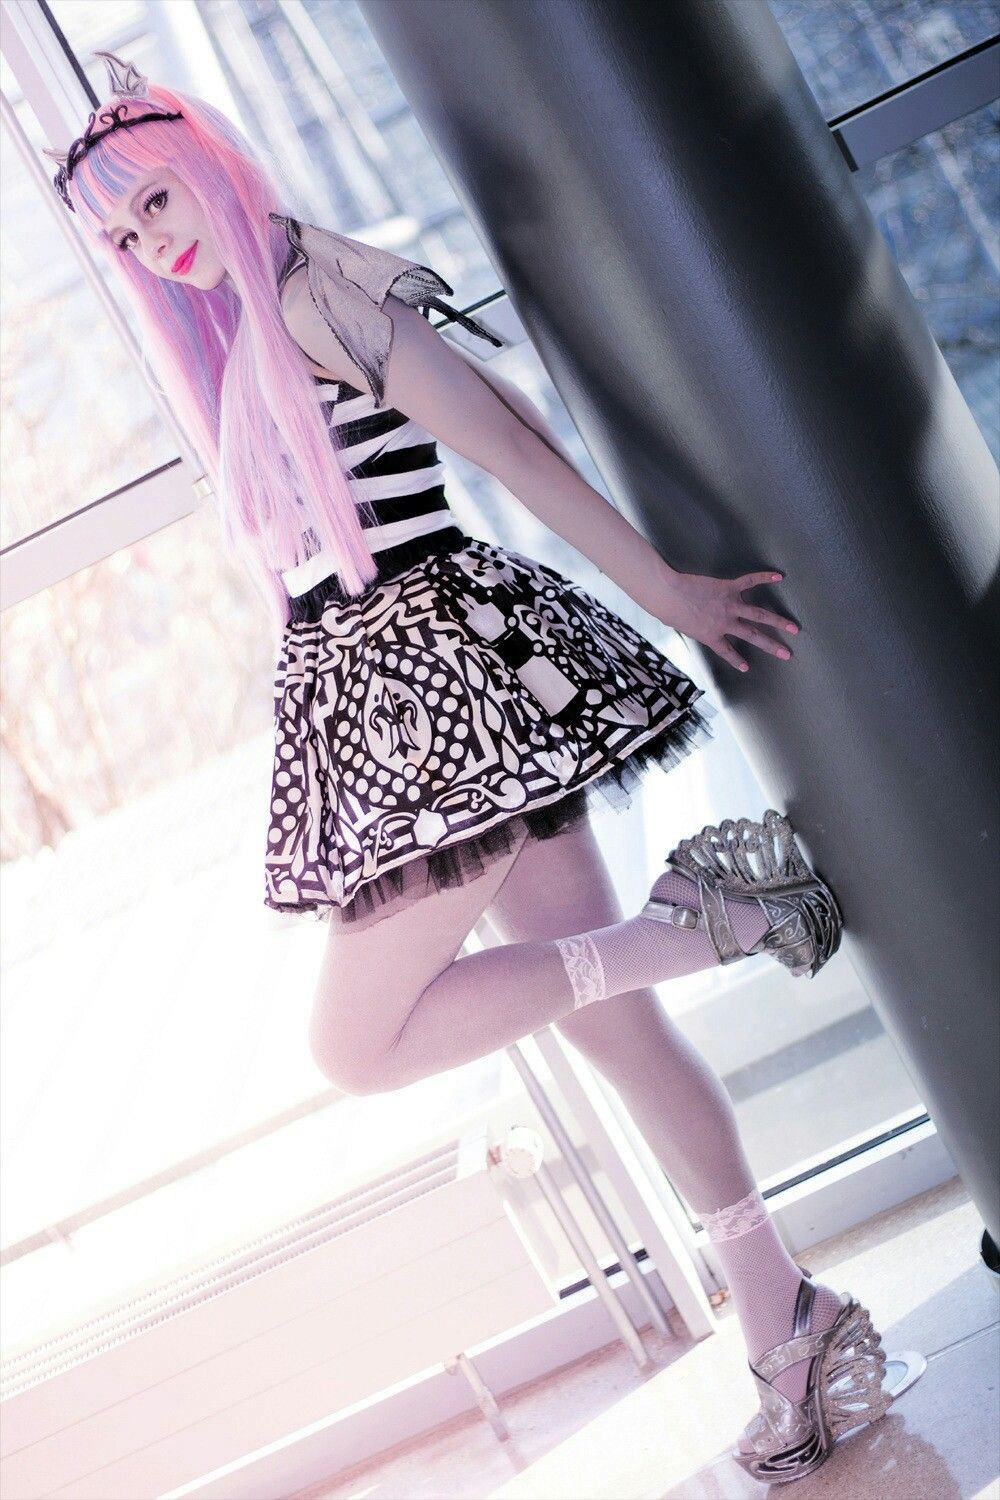 Pin by Ana Perez on Cosplay (With images) Monster high